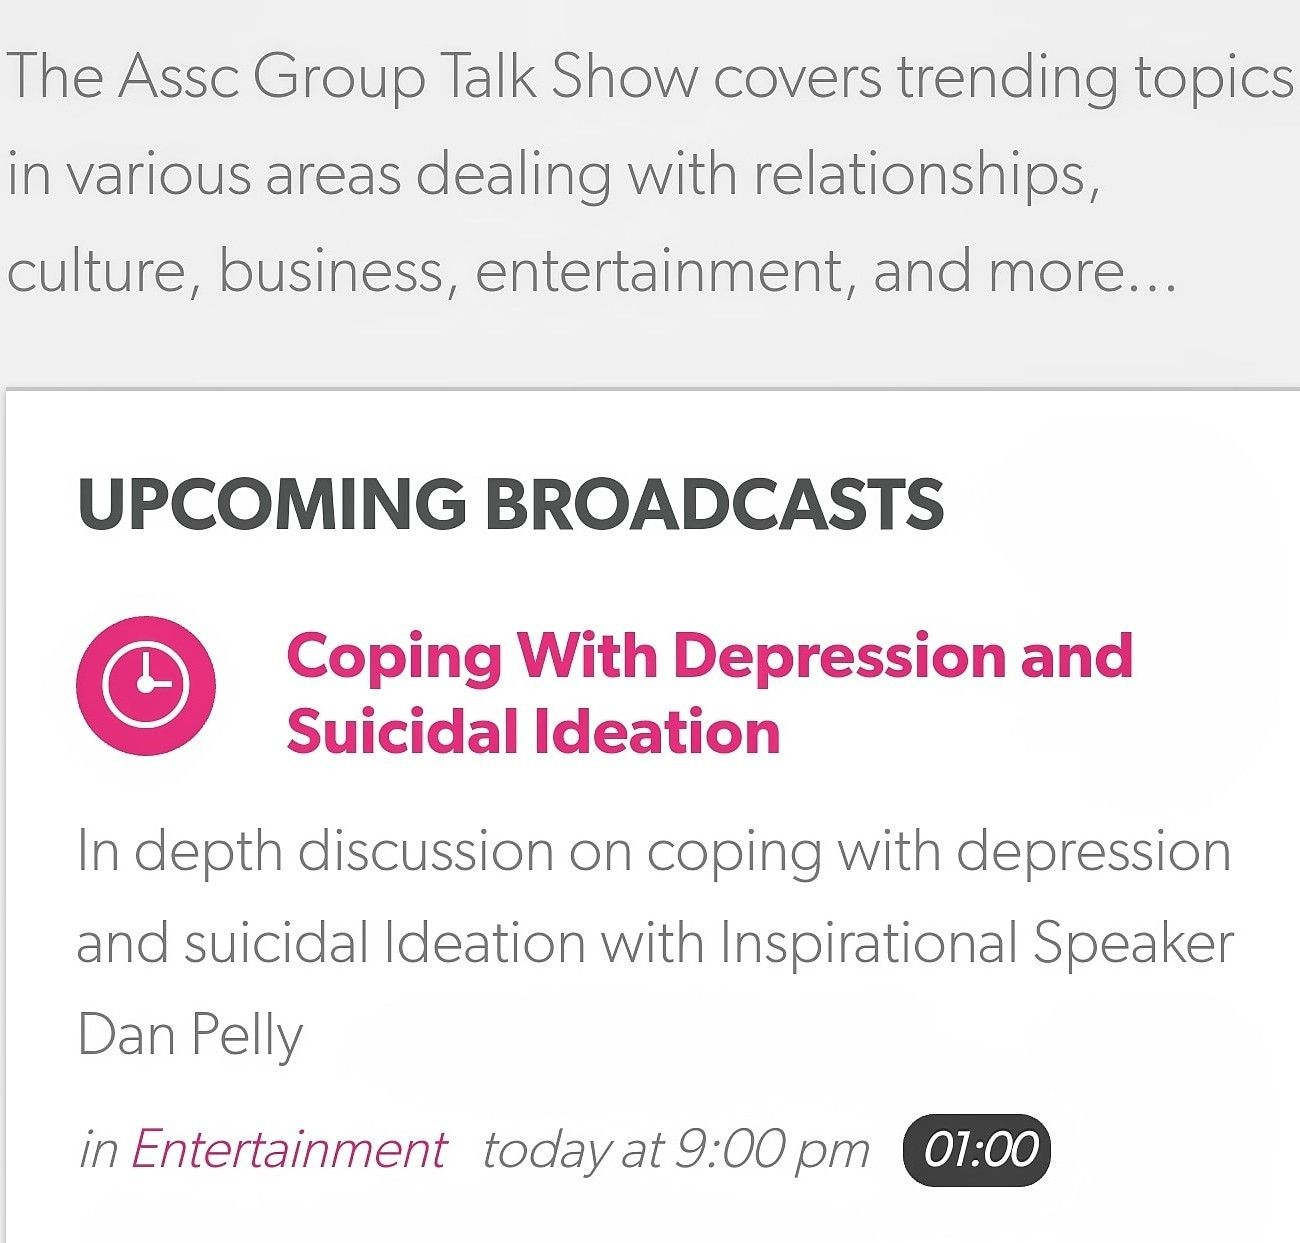 Dan Pelly Live Interview Tonight 9pm Est Assc Direct Quinn S Podcast Call I Inspirational Speaker Entertainment Today